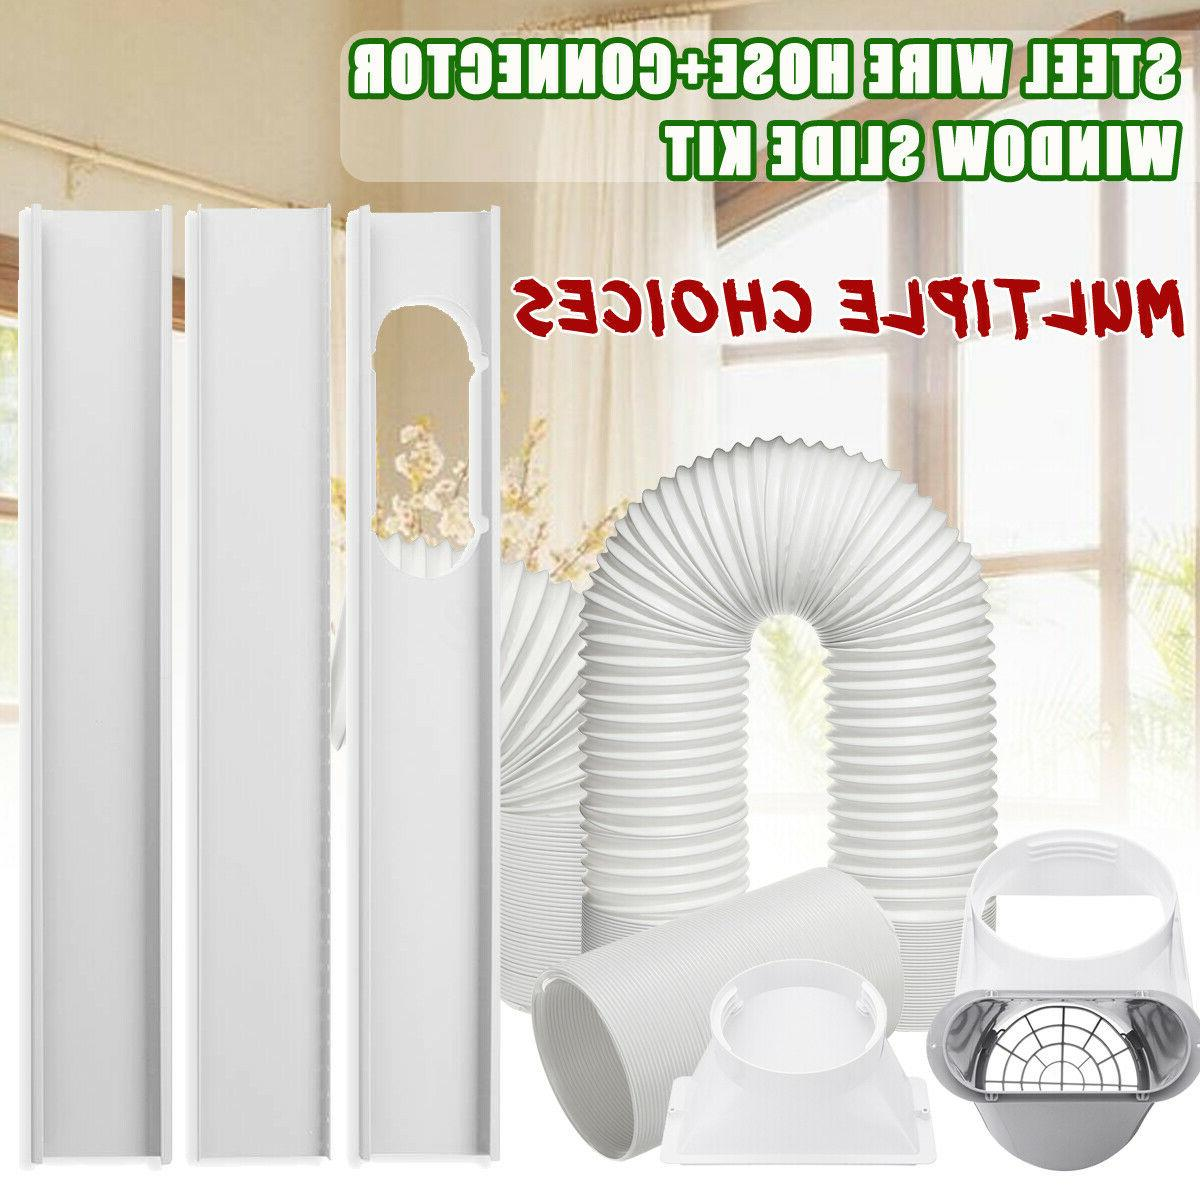 portable air conditioner window pipe interface exhaust